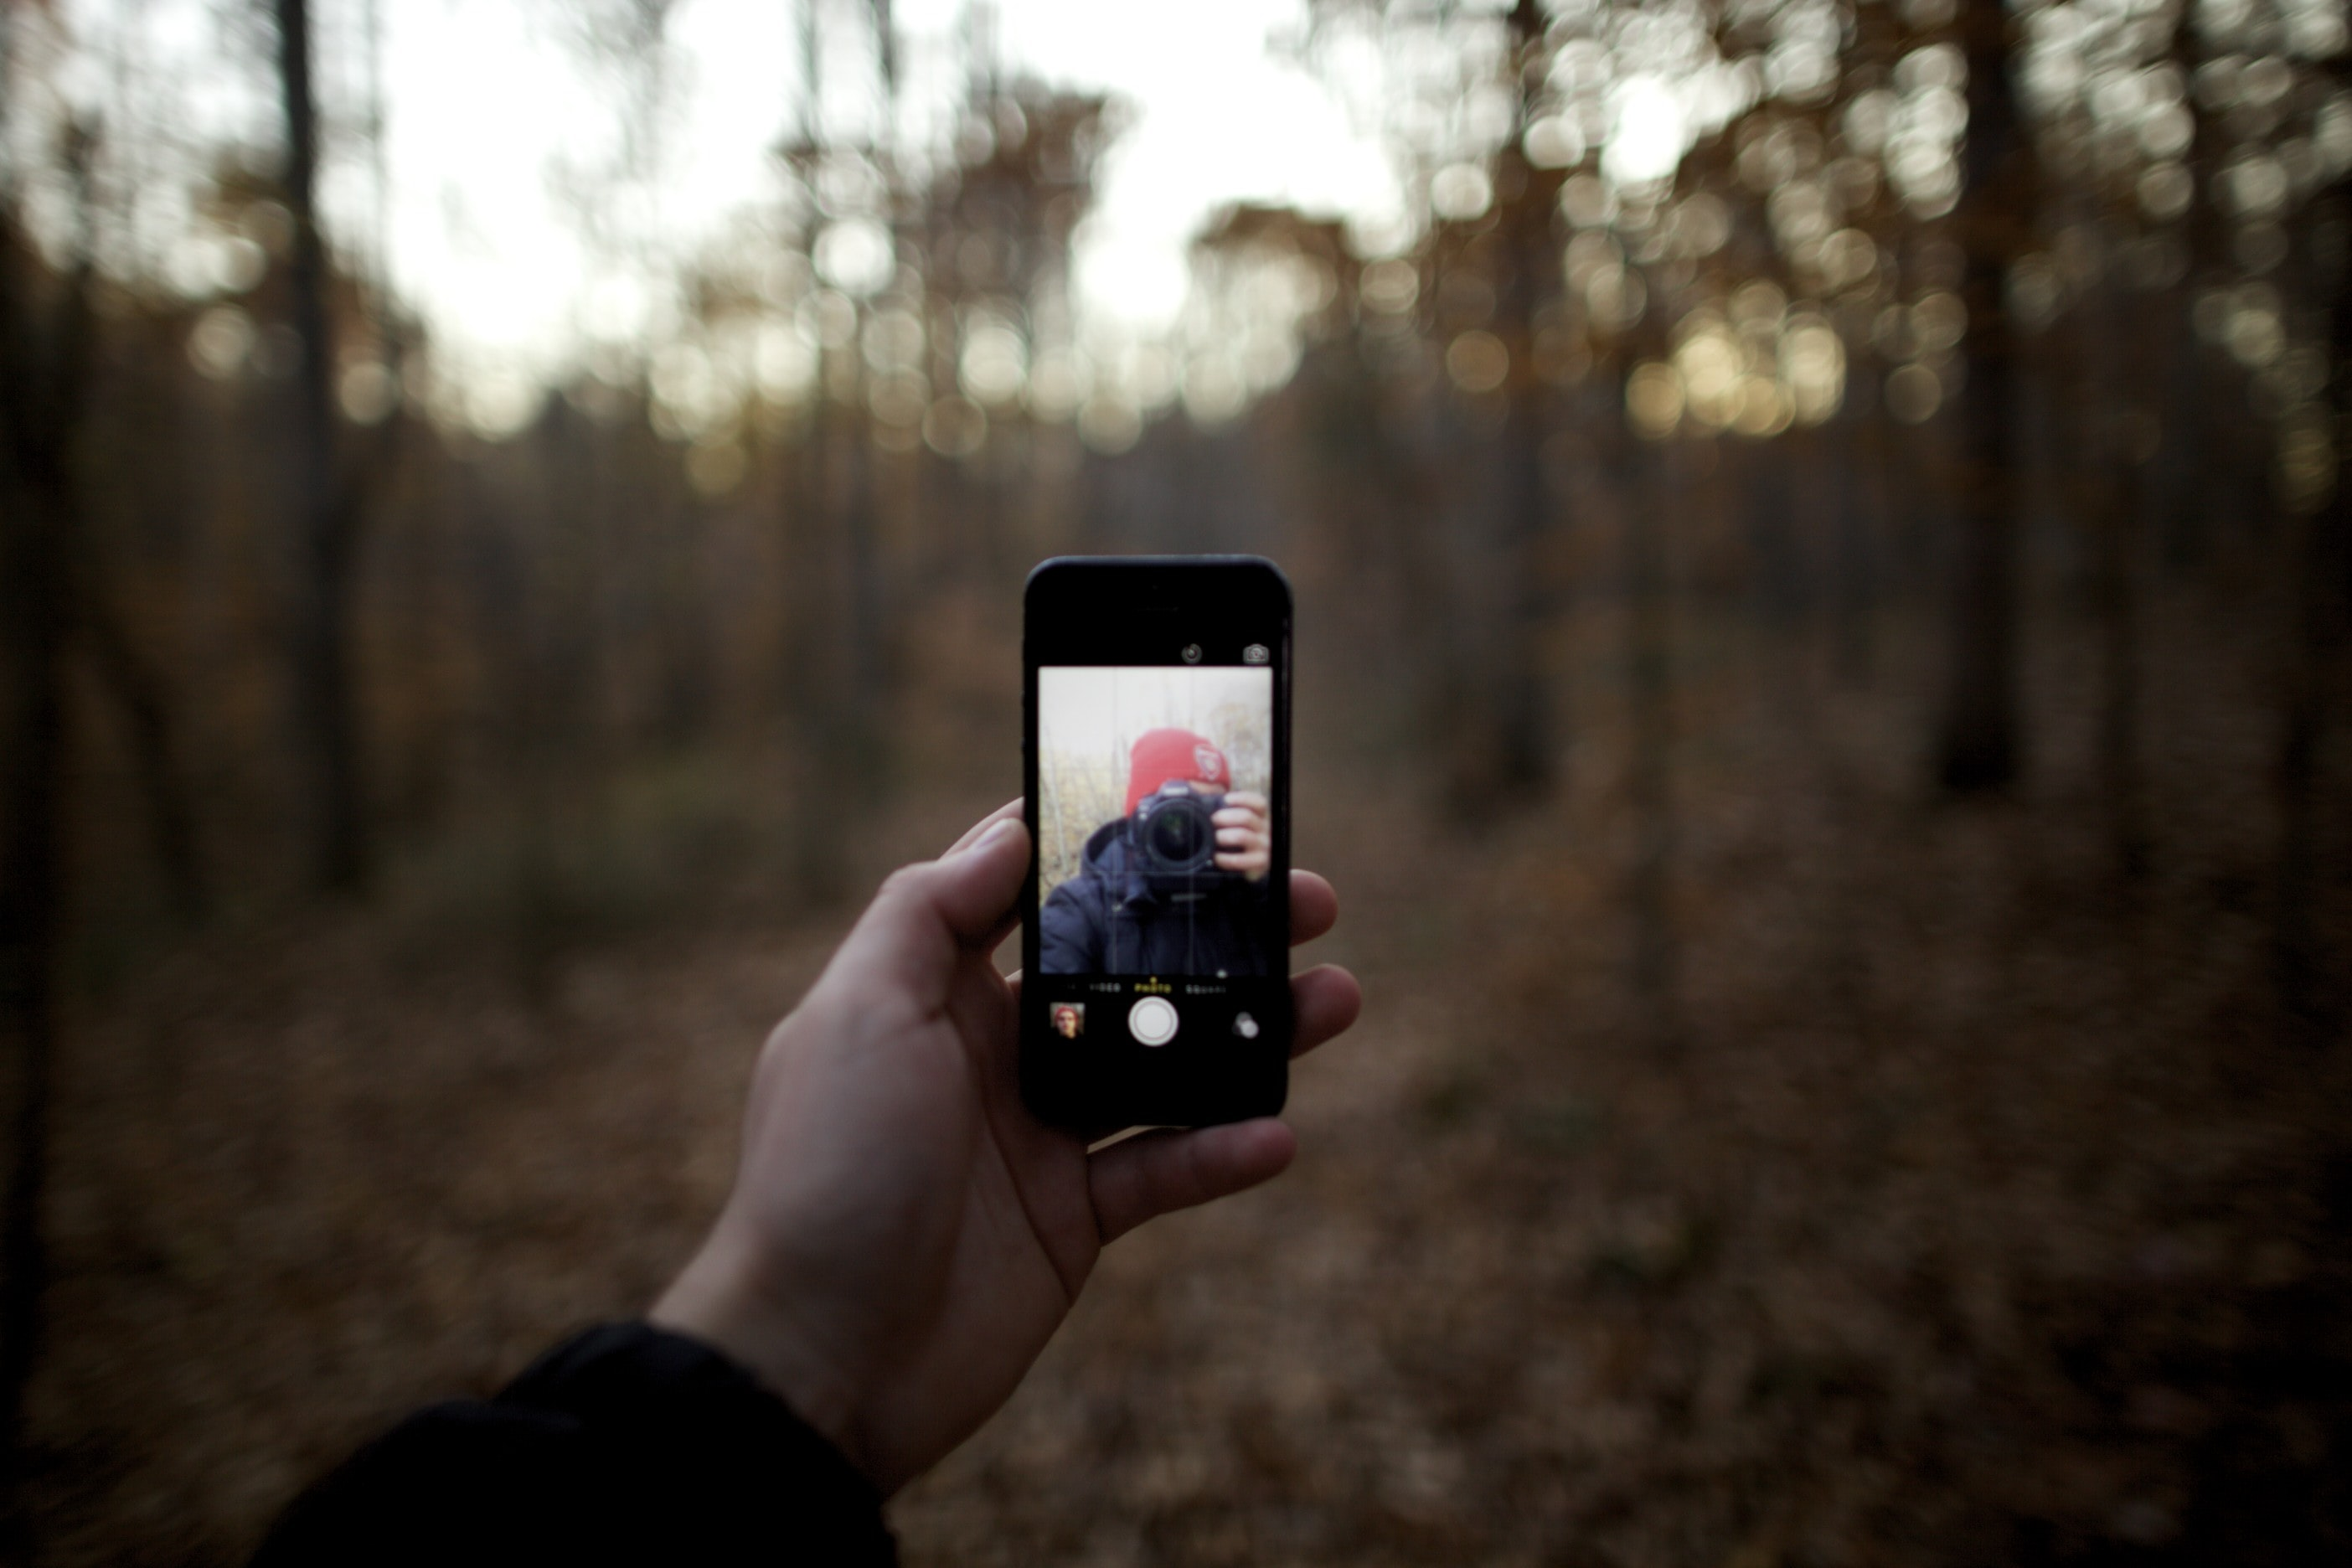 A young man holding out an iphone for a selfie alongside his camera in the woods